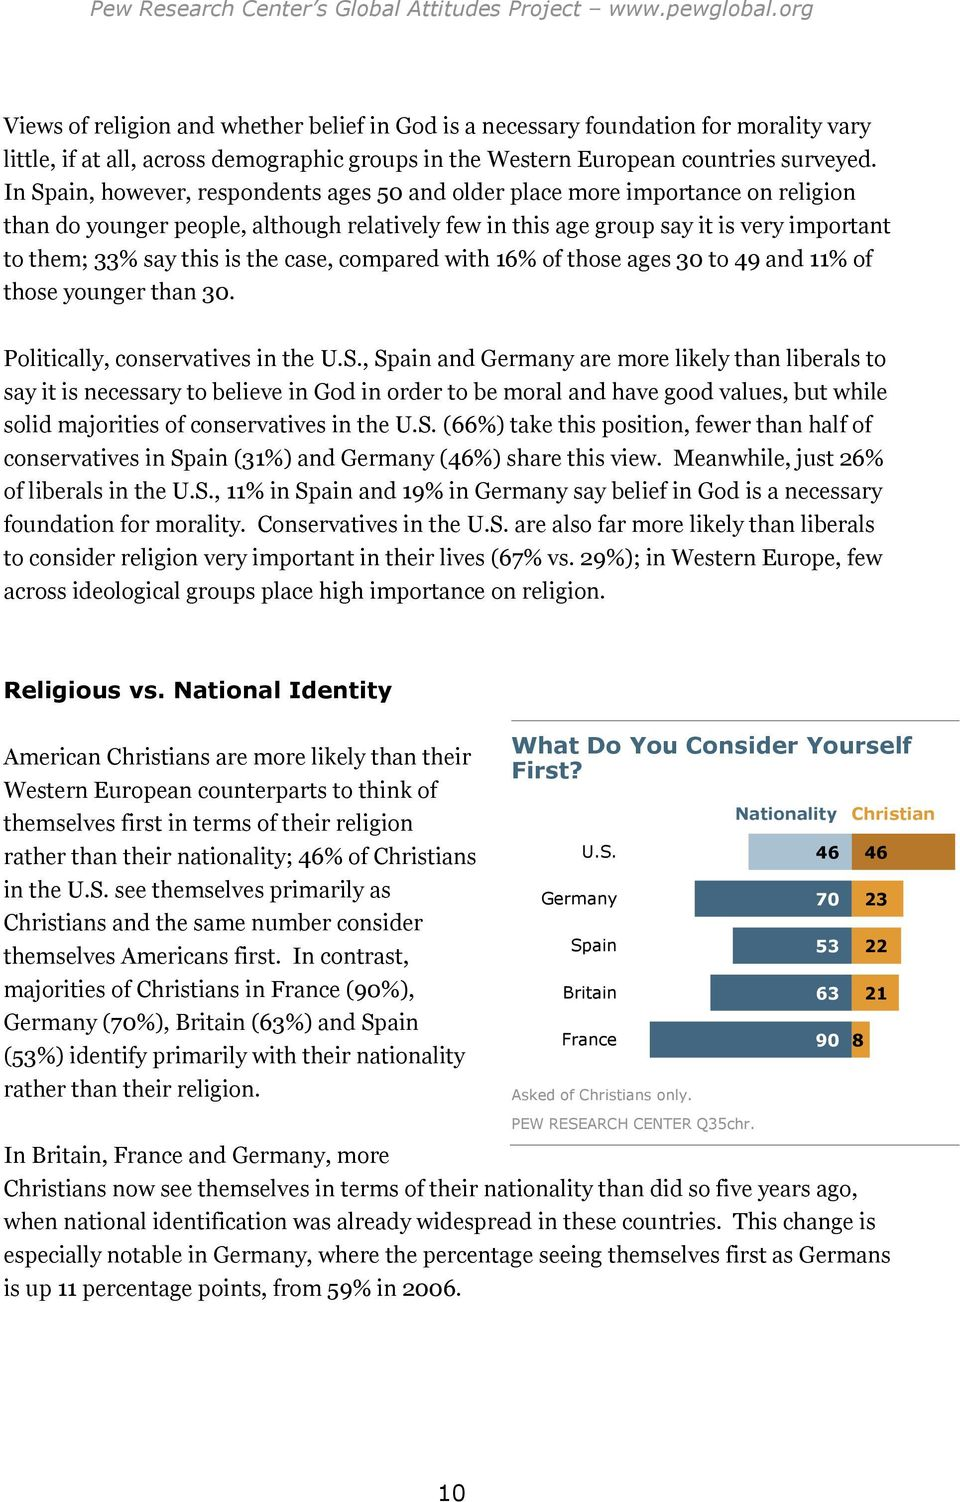 In Spain, however, respondents ages 50 and older place more importance on religion than do younger people, although relatively few in this age group say it is very important to them; 33% say this is